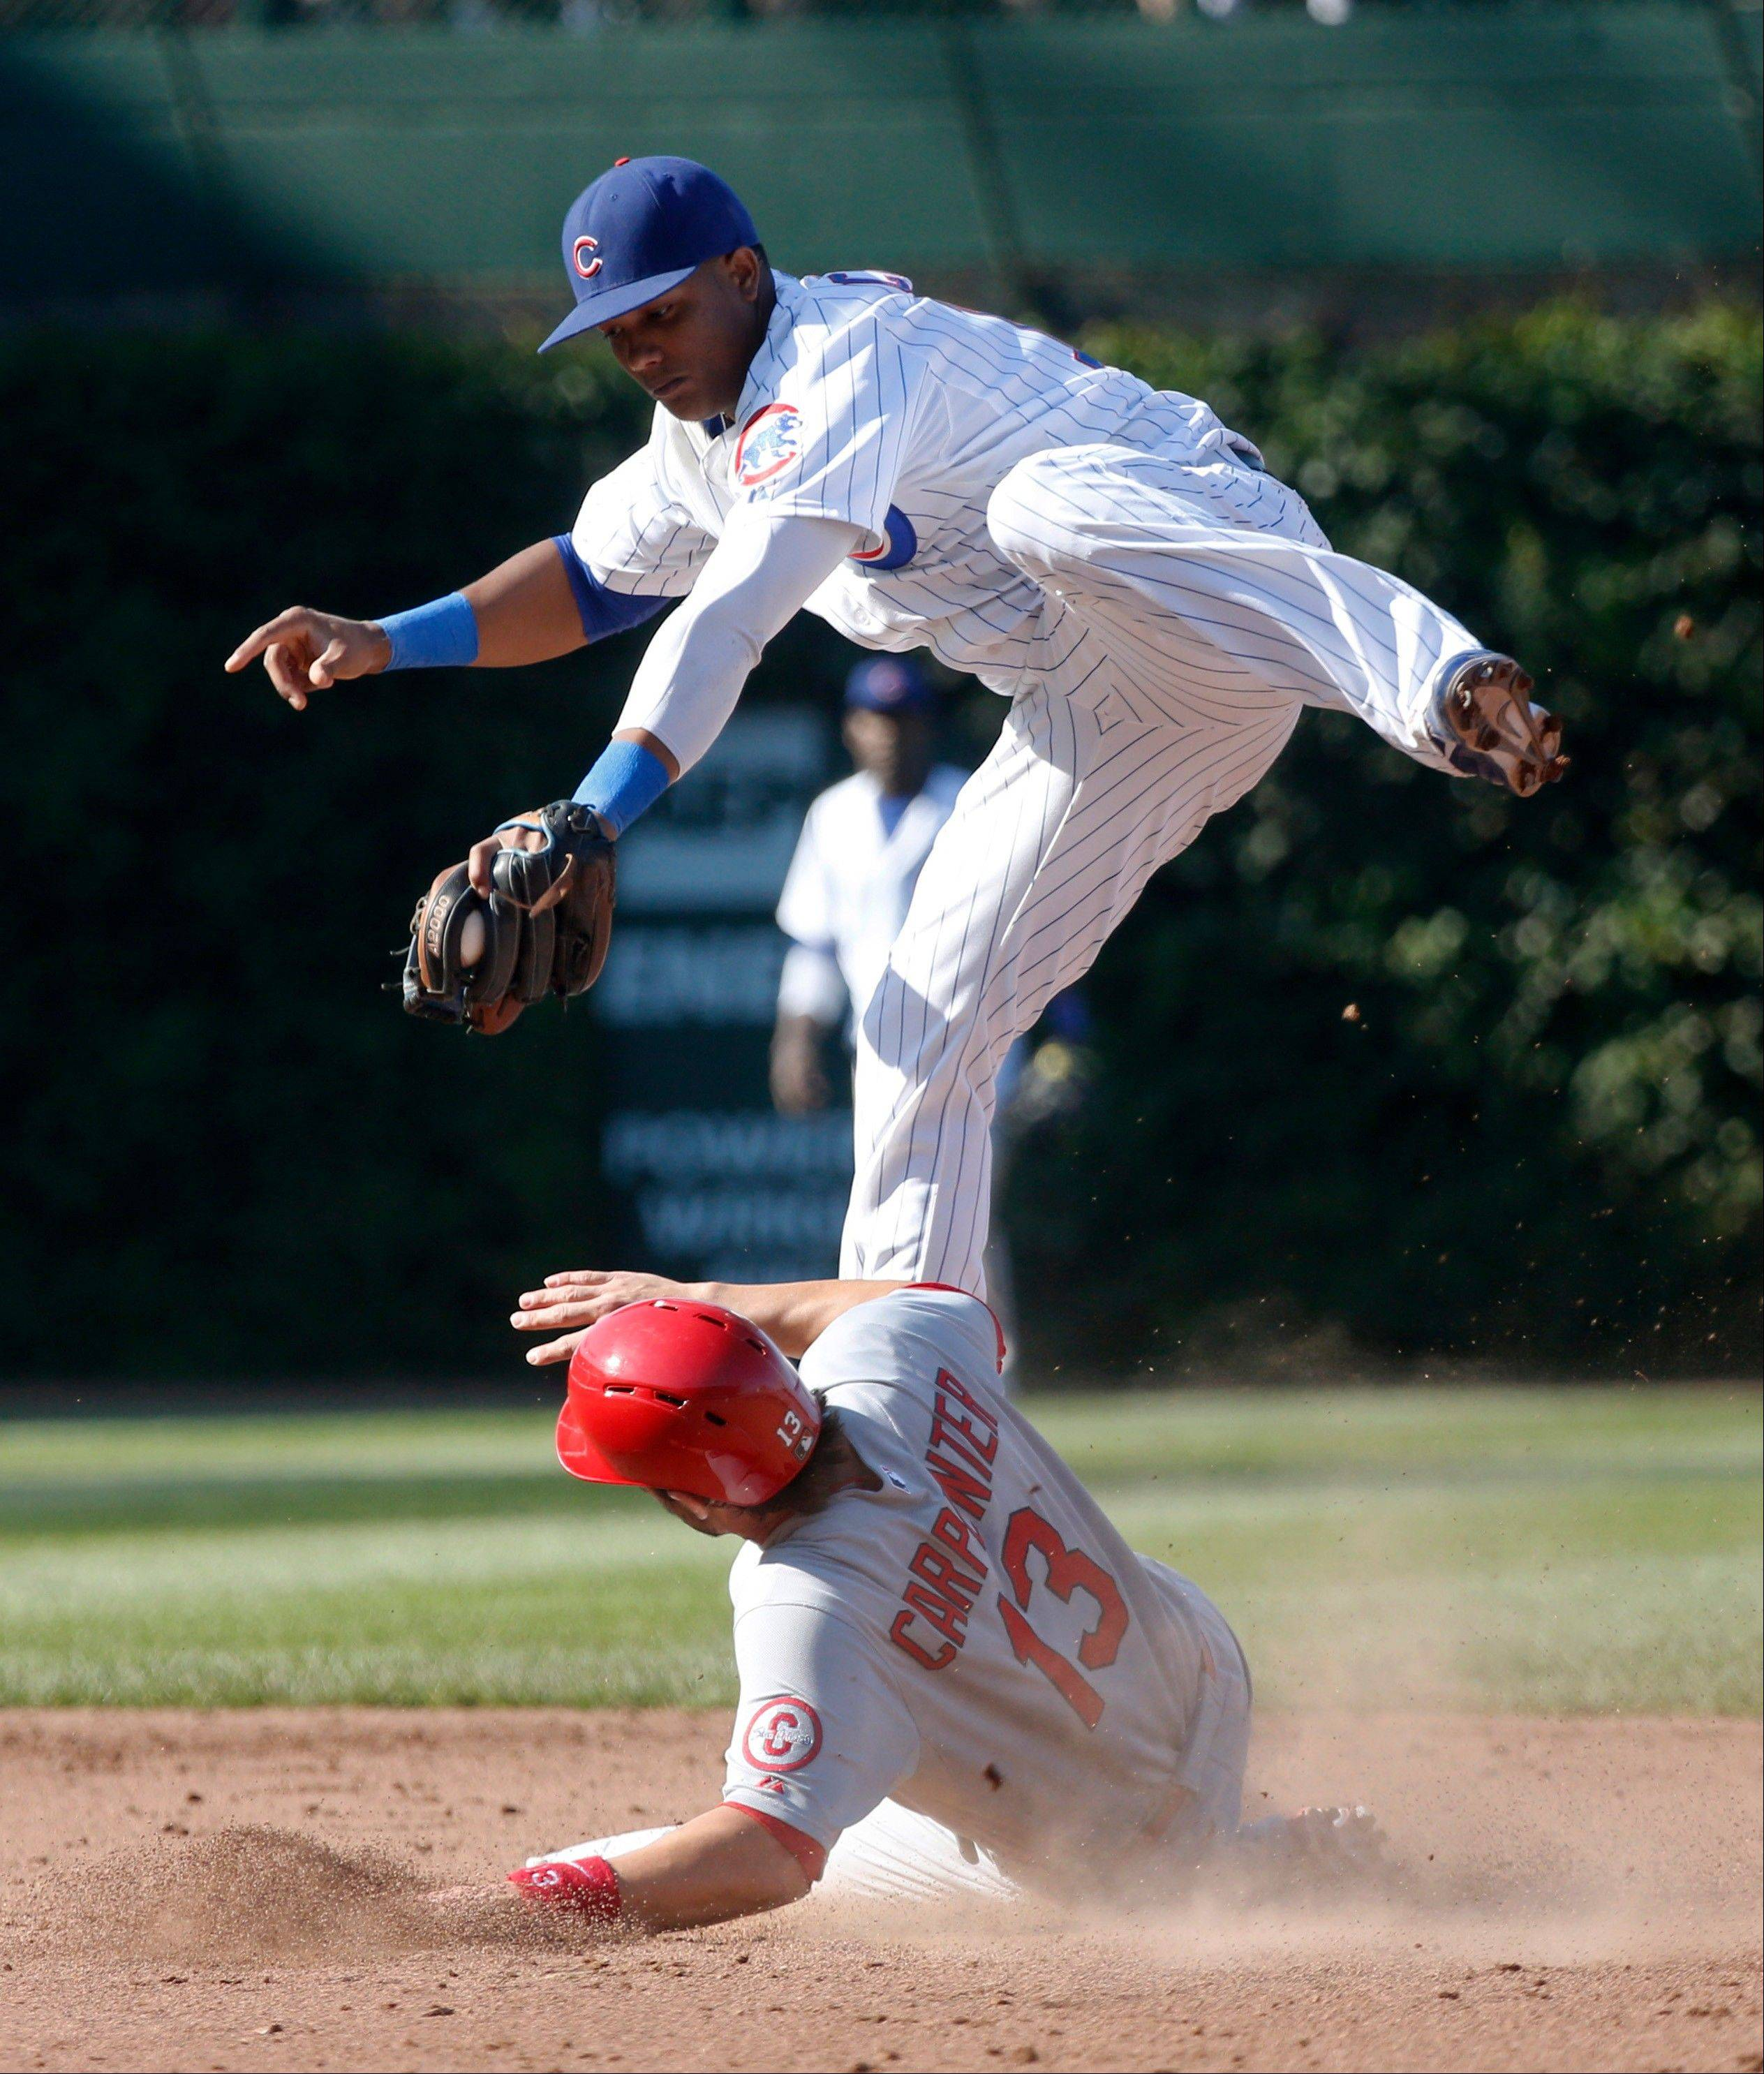 Cubs' shortstop Starlin Castro takes a high throw from second baseman Darwin Barney off a ball hit by St. Louis Cardinals' Jon Jay and forces out Matt Carpenter at second during Friday's game at Wrigley Field. The Cubs won 7-0.